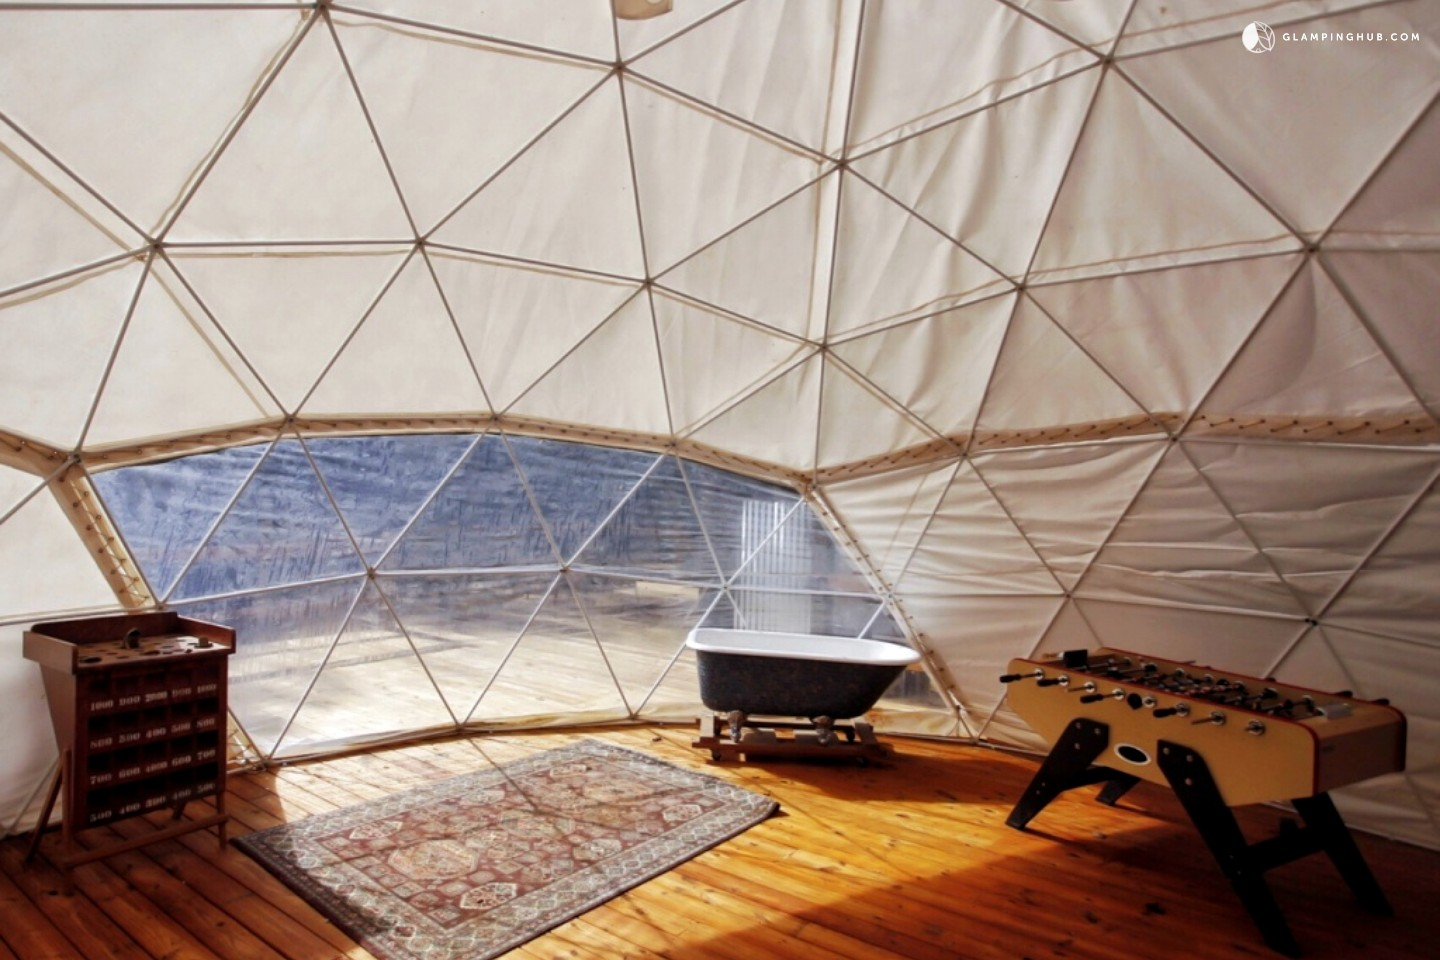 East Ellijay (GA) United States  city photos : ... of Fantastic Glamping Dome Nestled in Appalachian Mountains, Georgia